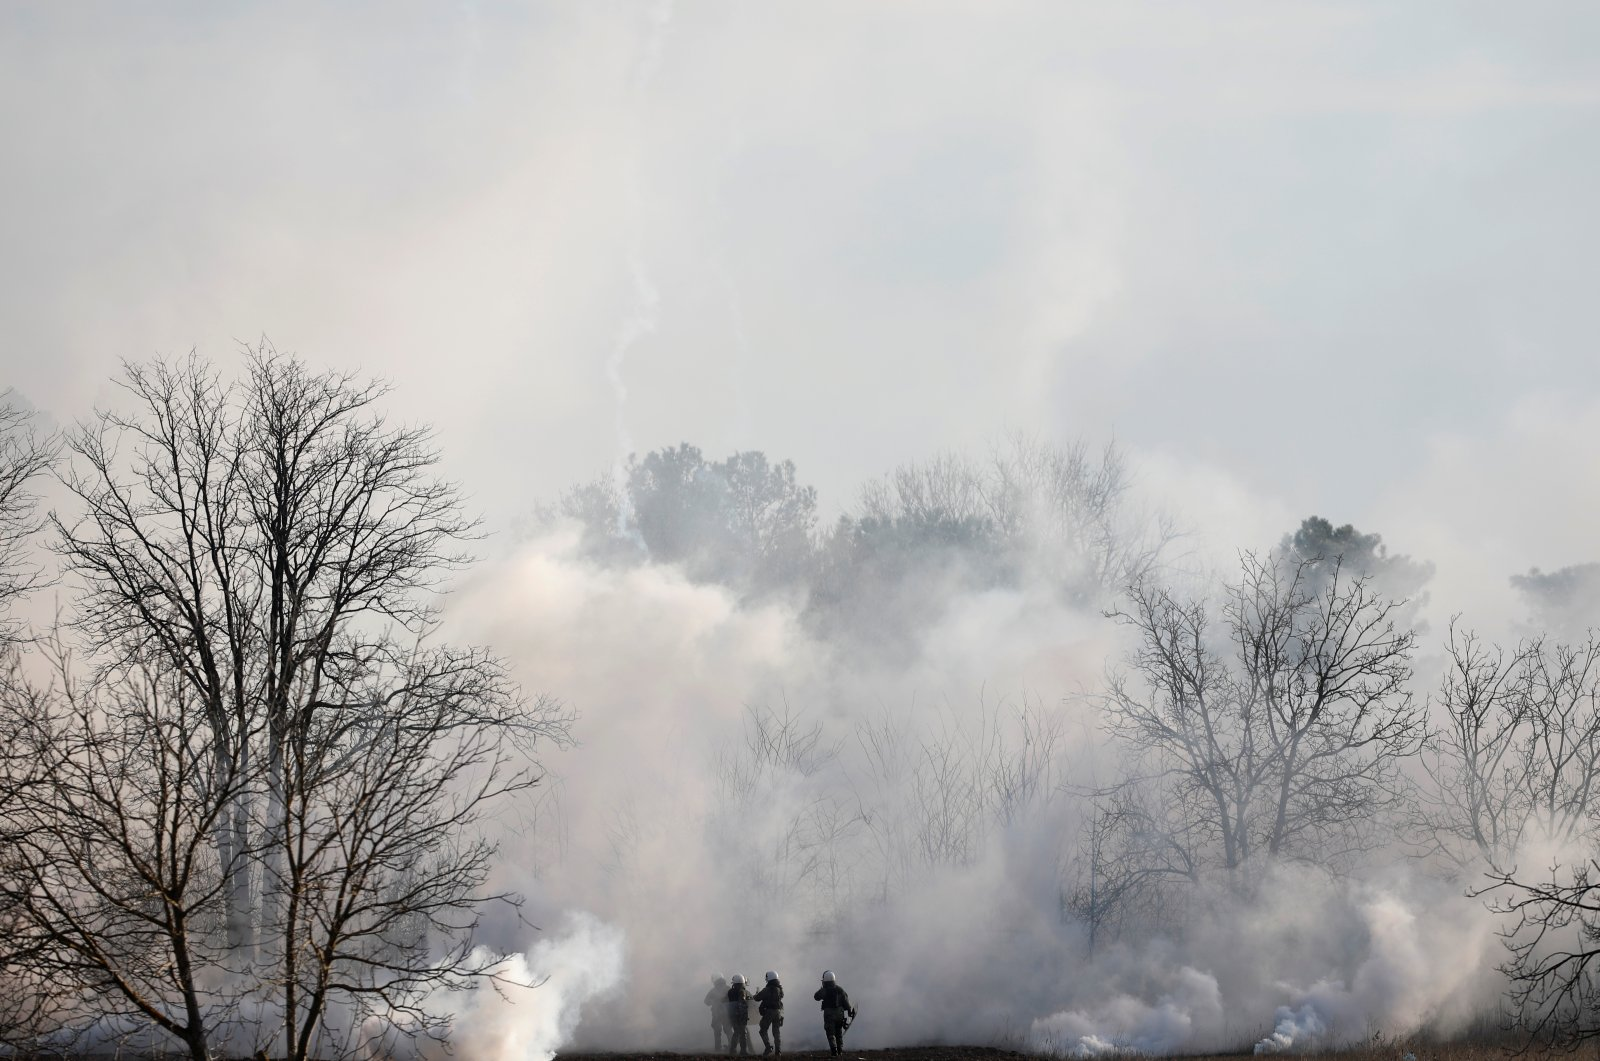 Greek riot police are seen through smoke during clashes at the Greek-Turkish border in Kastanies, Evros region, Friday, March 6, 2020. (Reuters Photo)